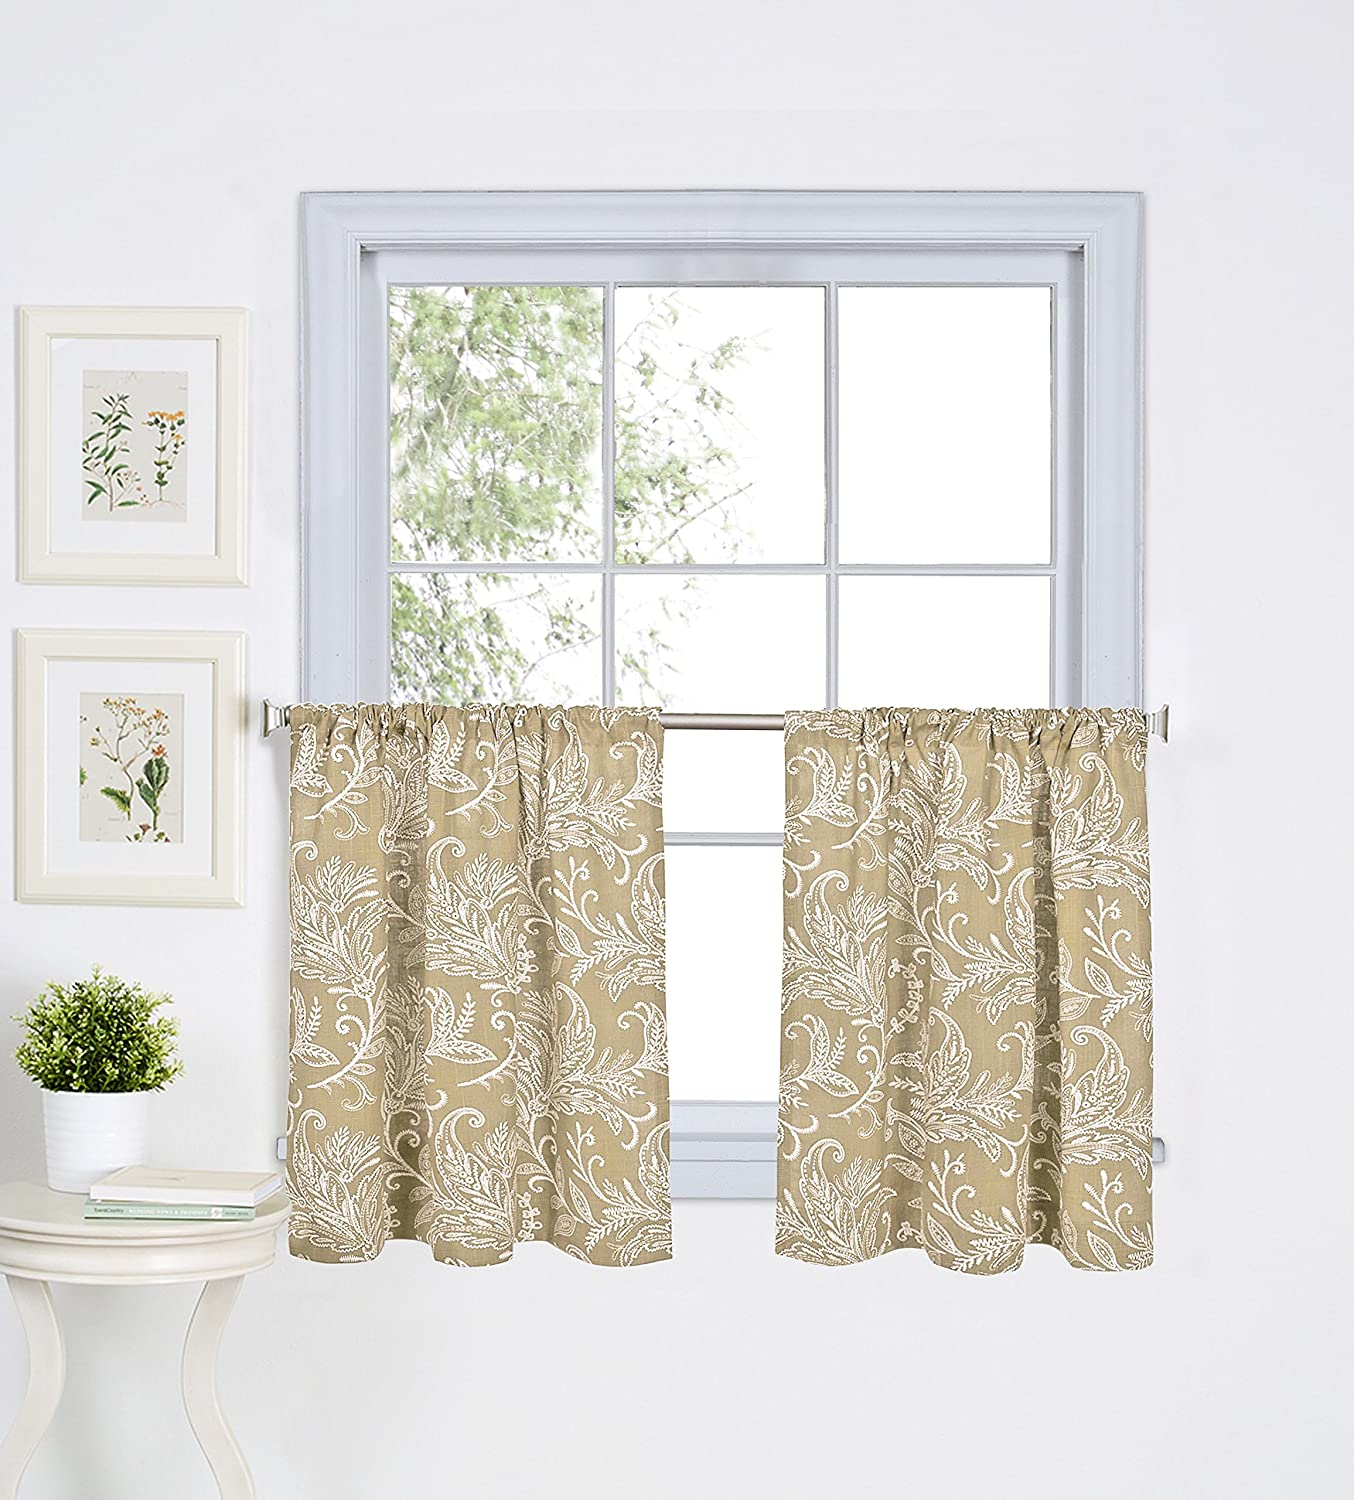 30 x 24 Elrene Home Fashions 26865775716 Floral Rod Pocket Kitchen//Caf/é Tier Window Curtain Set of 2 Spice